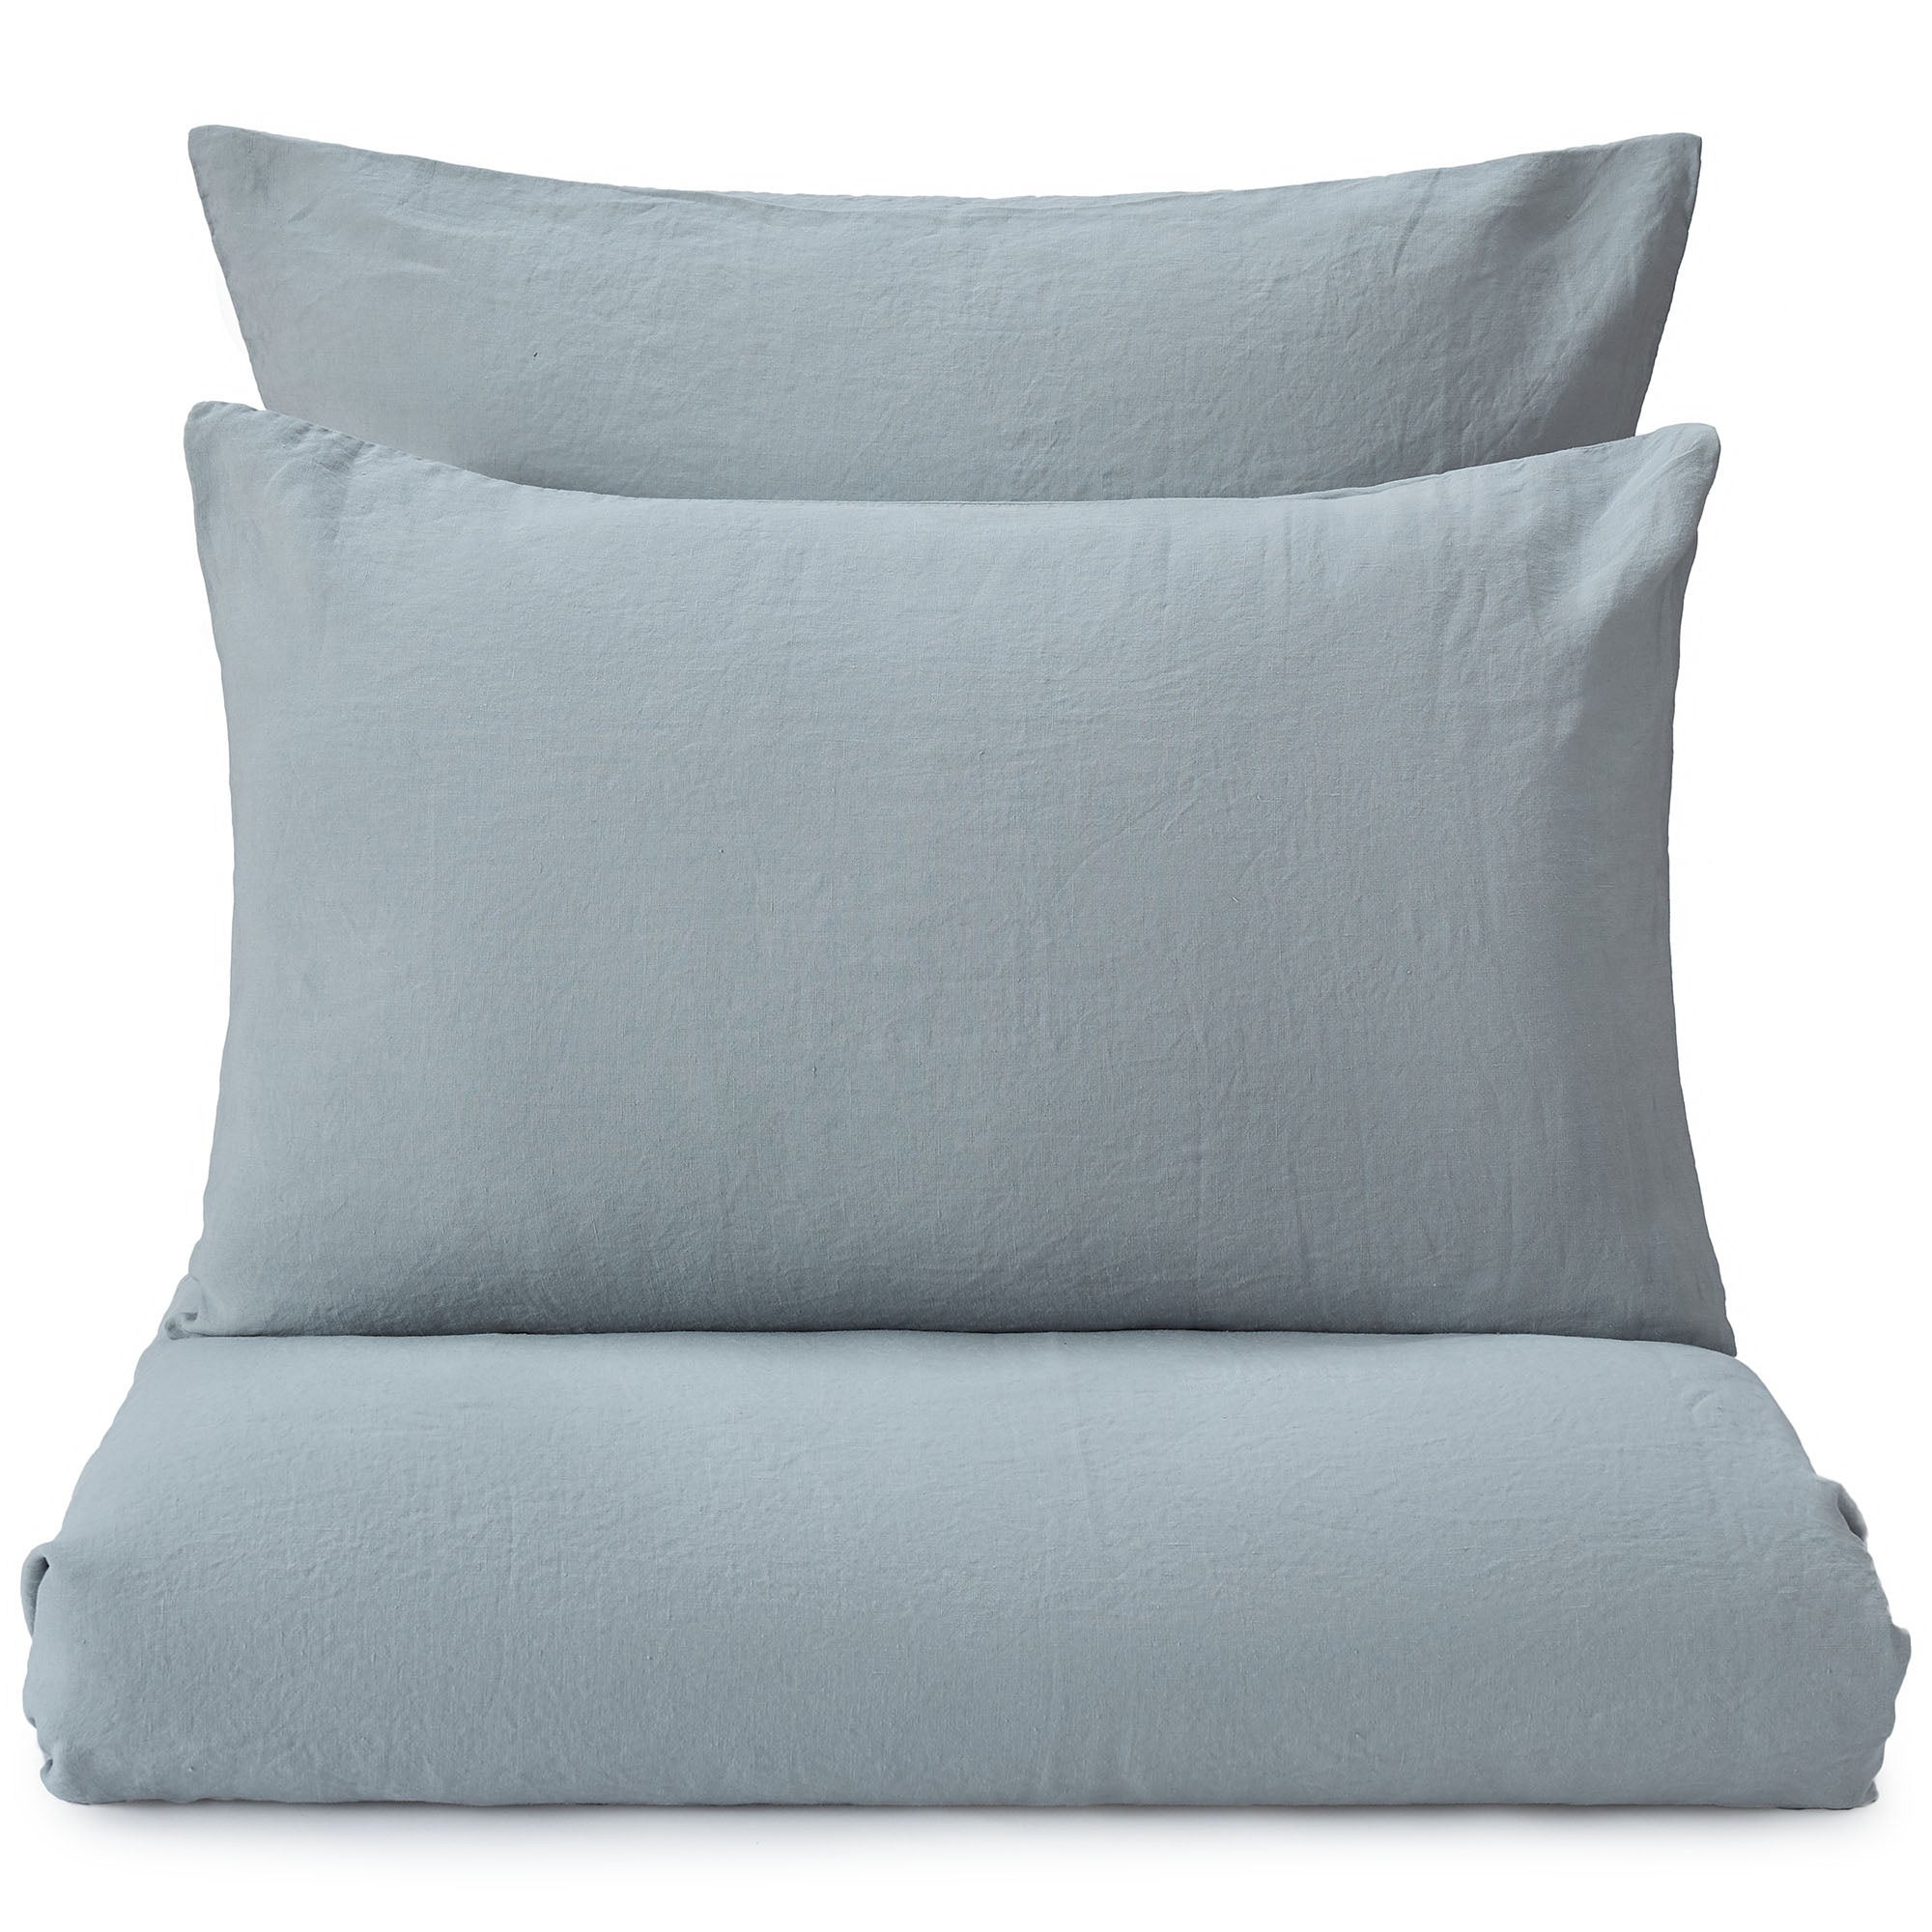 Mafalda Bed Linen [Light green grey]